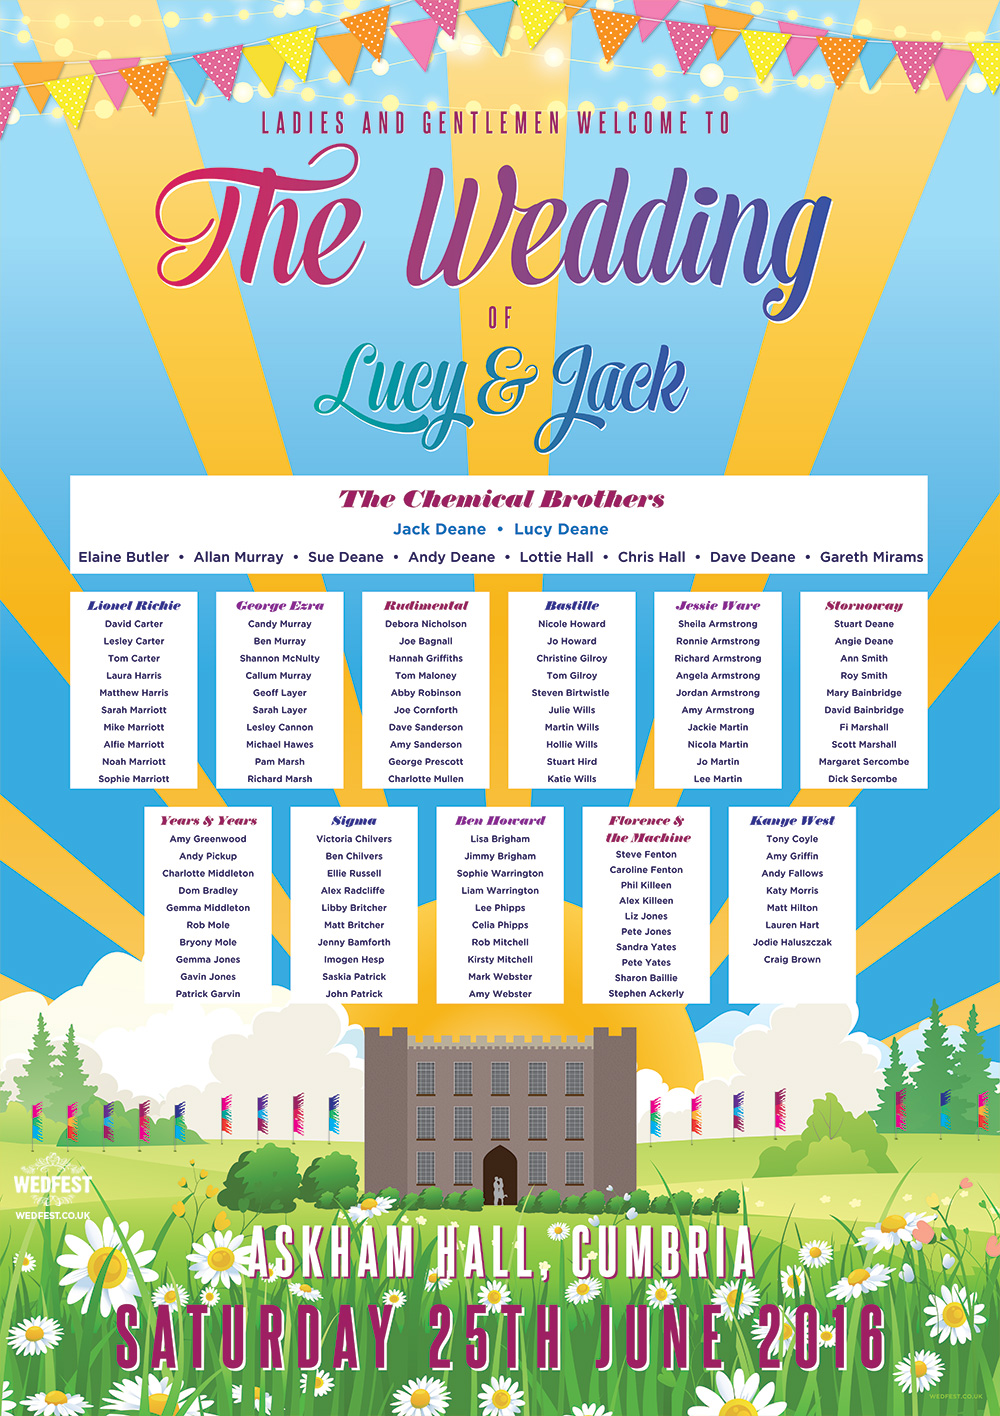 askham hall cumbria festival boho wedding seating plan